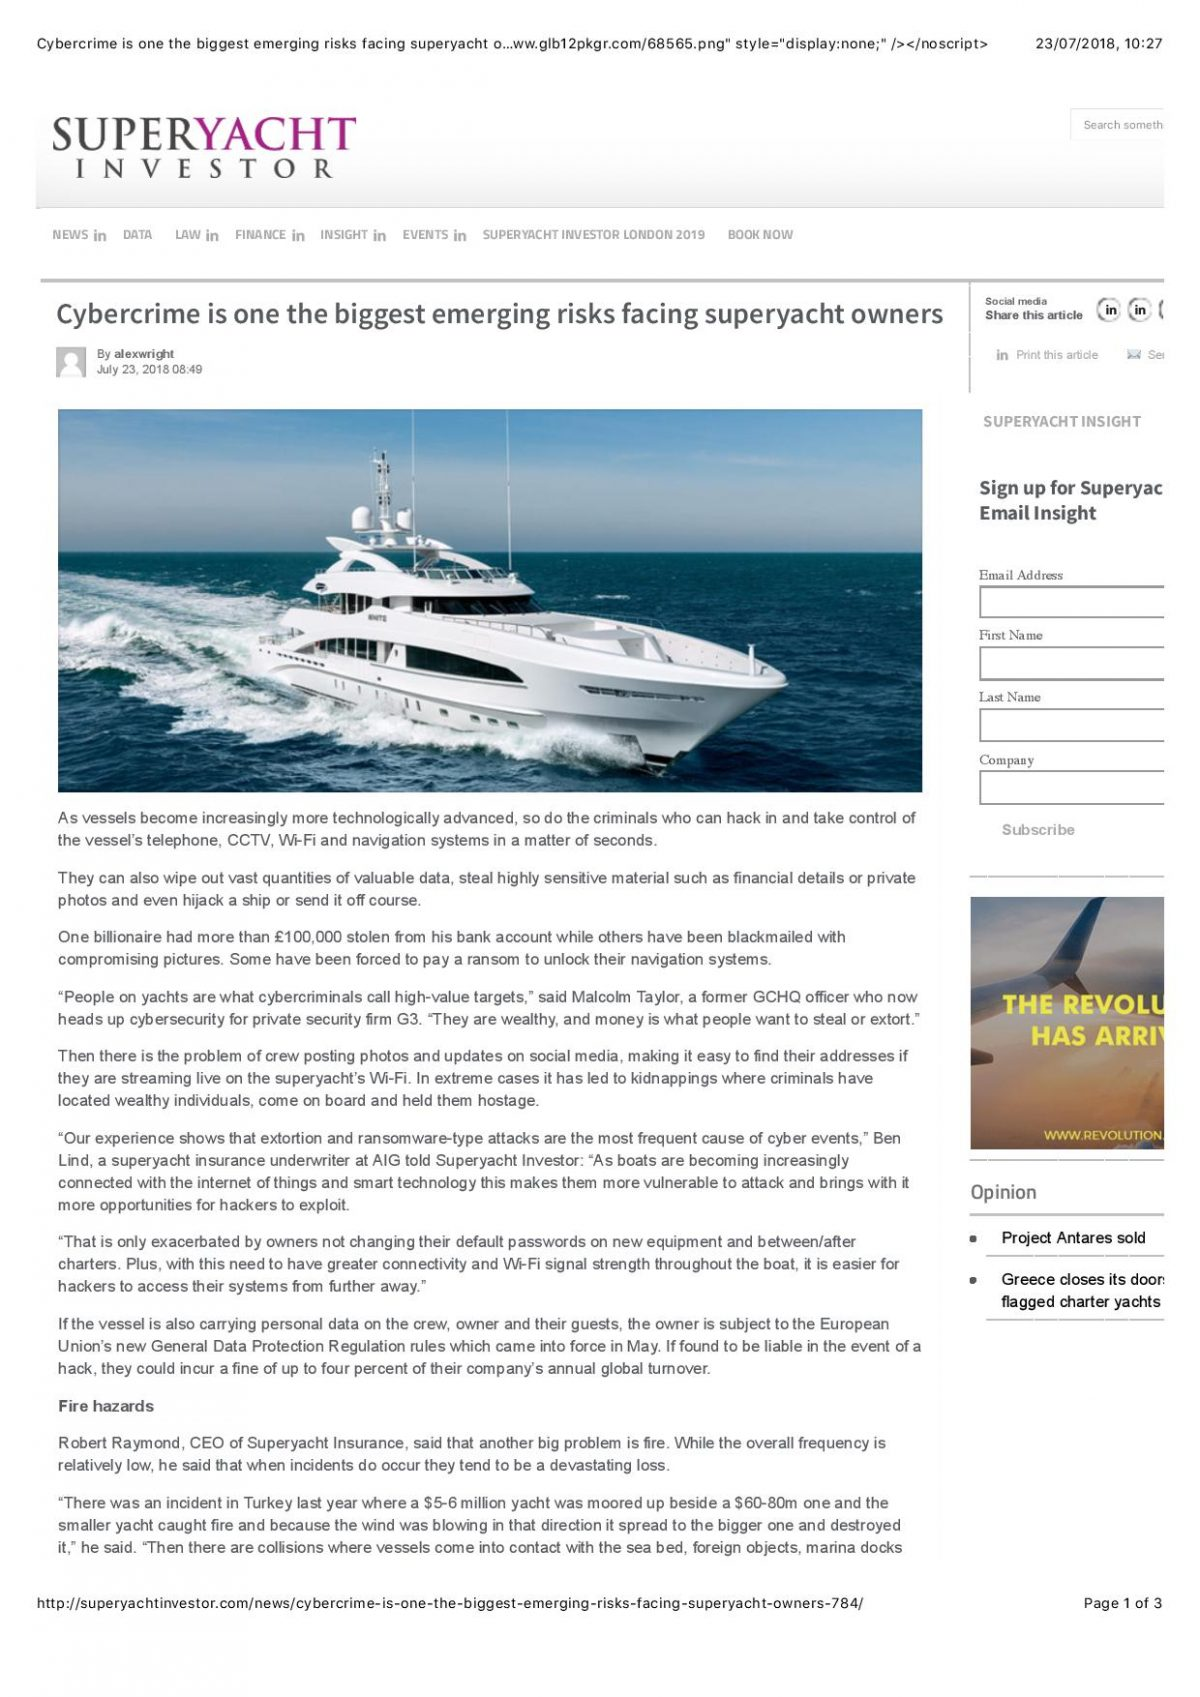 cybercrime-is-one-the-biggest-emerging-risks-facing-superyacht-owners-page-001